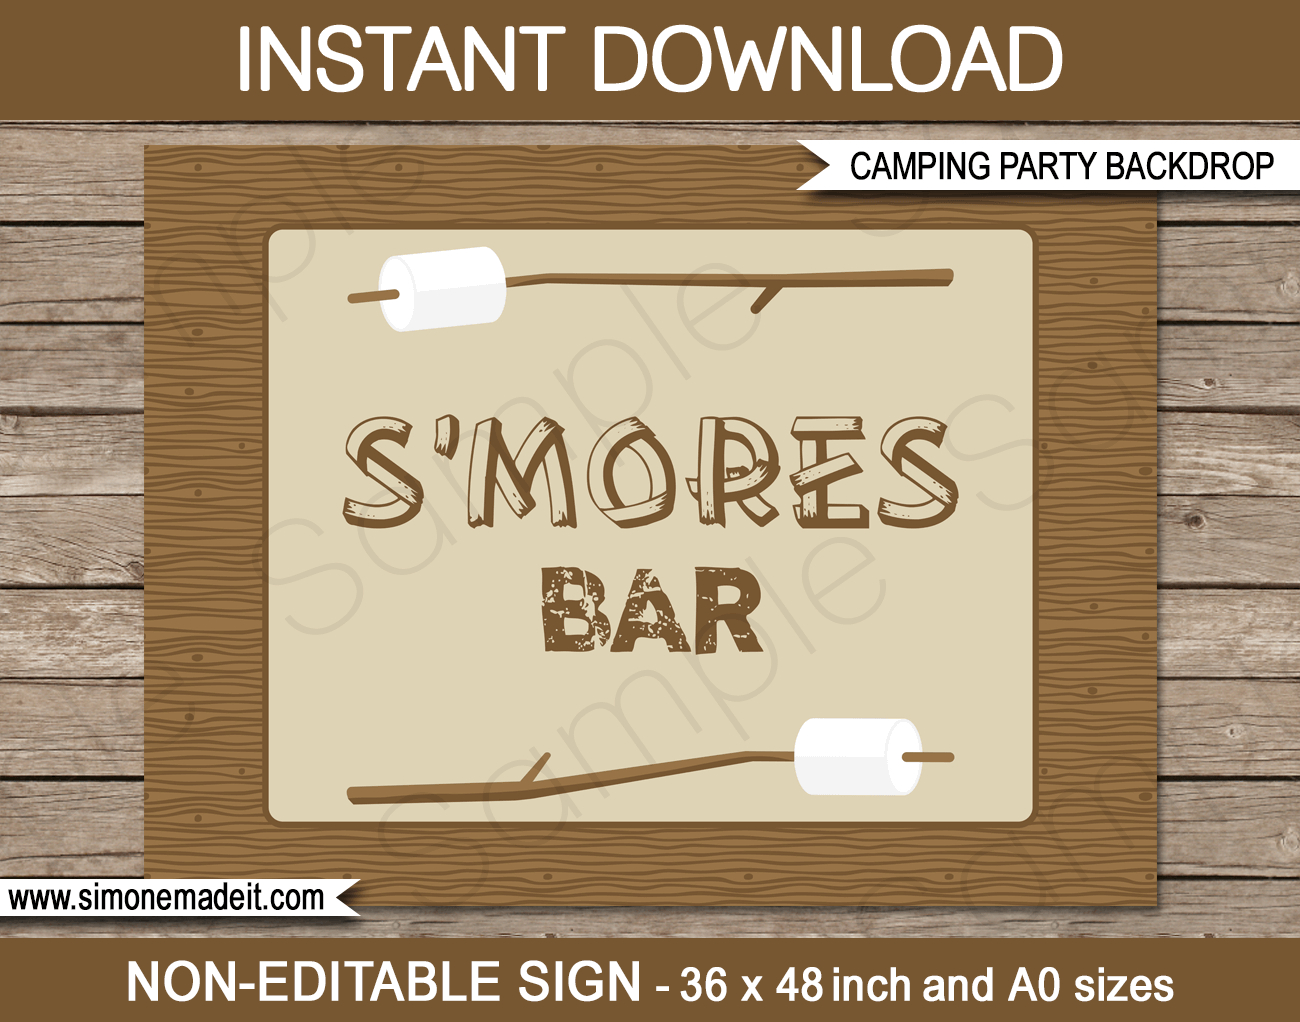 New Large Printable Camping Party Signs And Backdrops - Free Printable Camping Signs